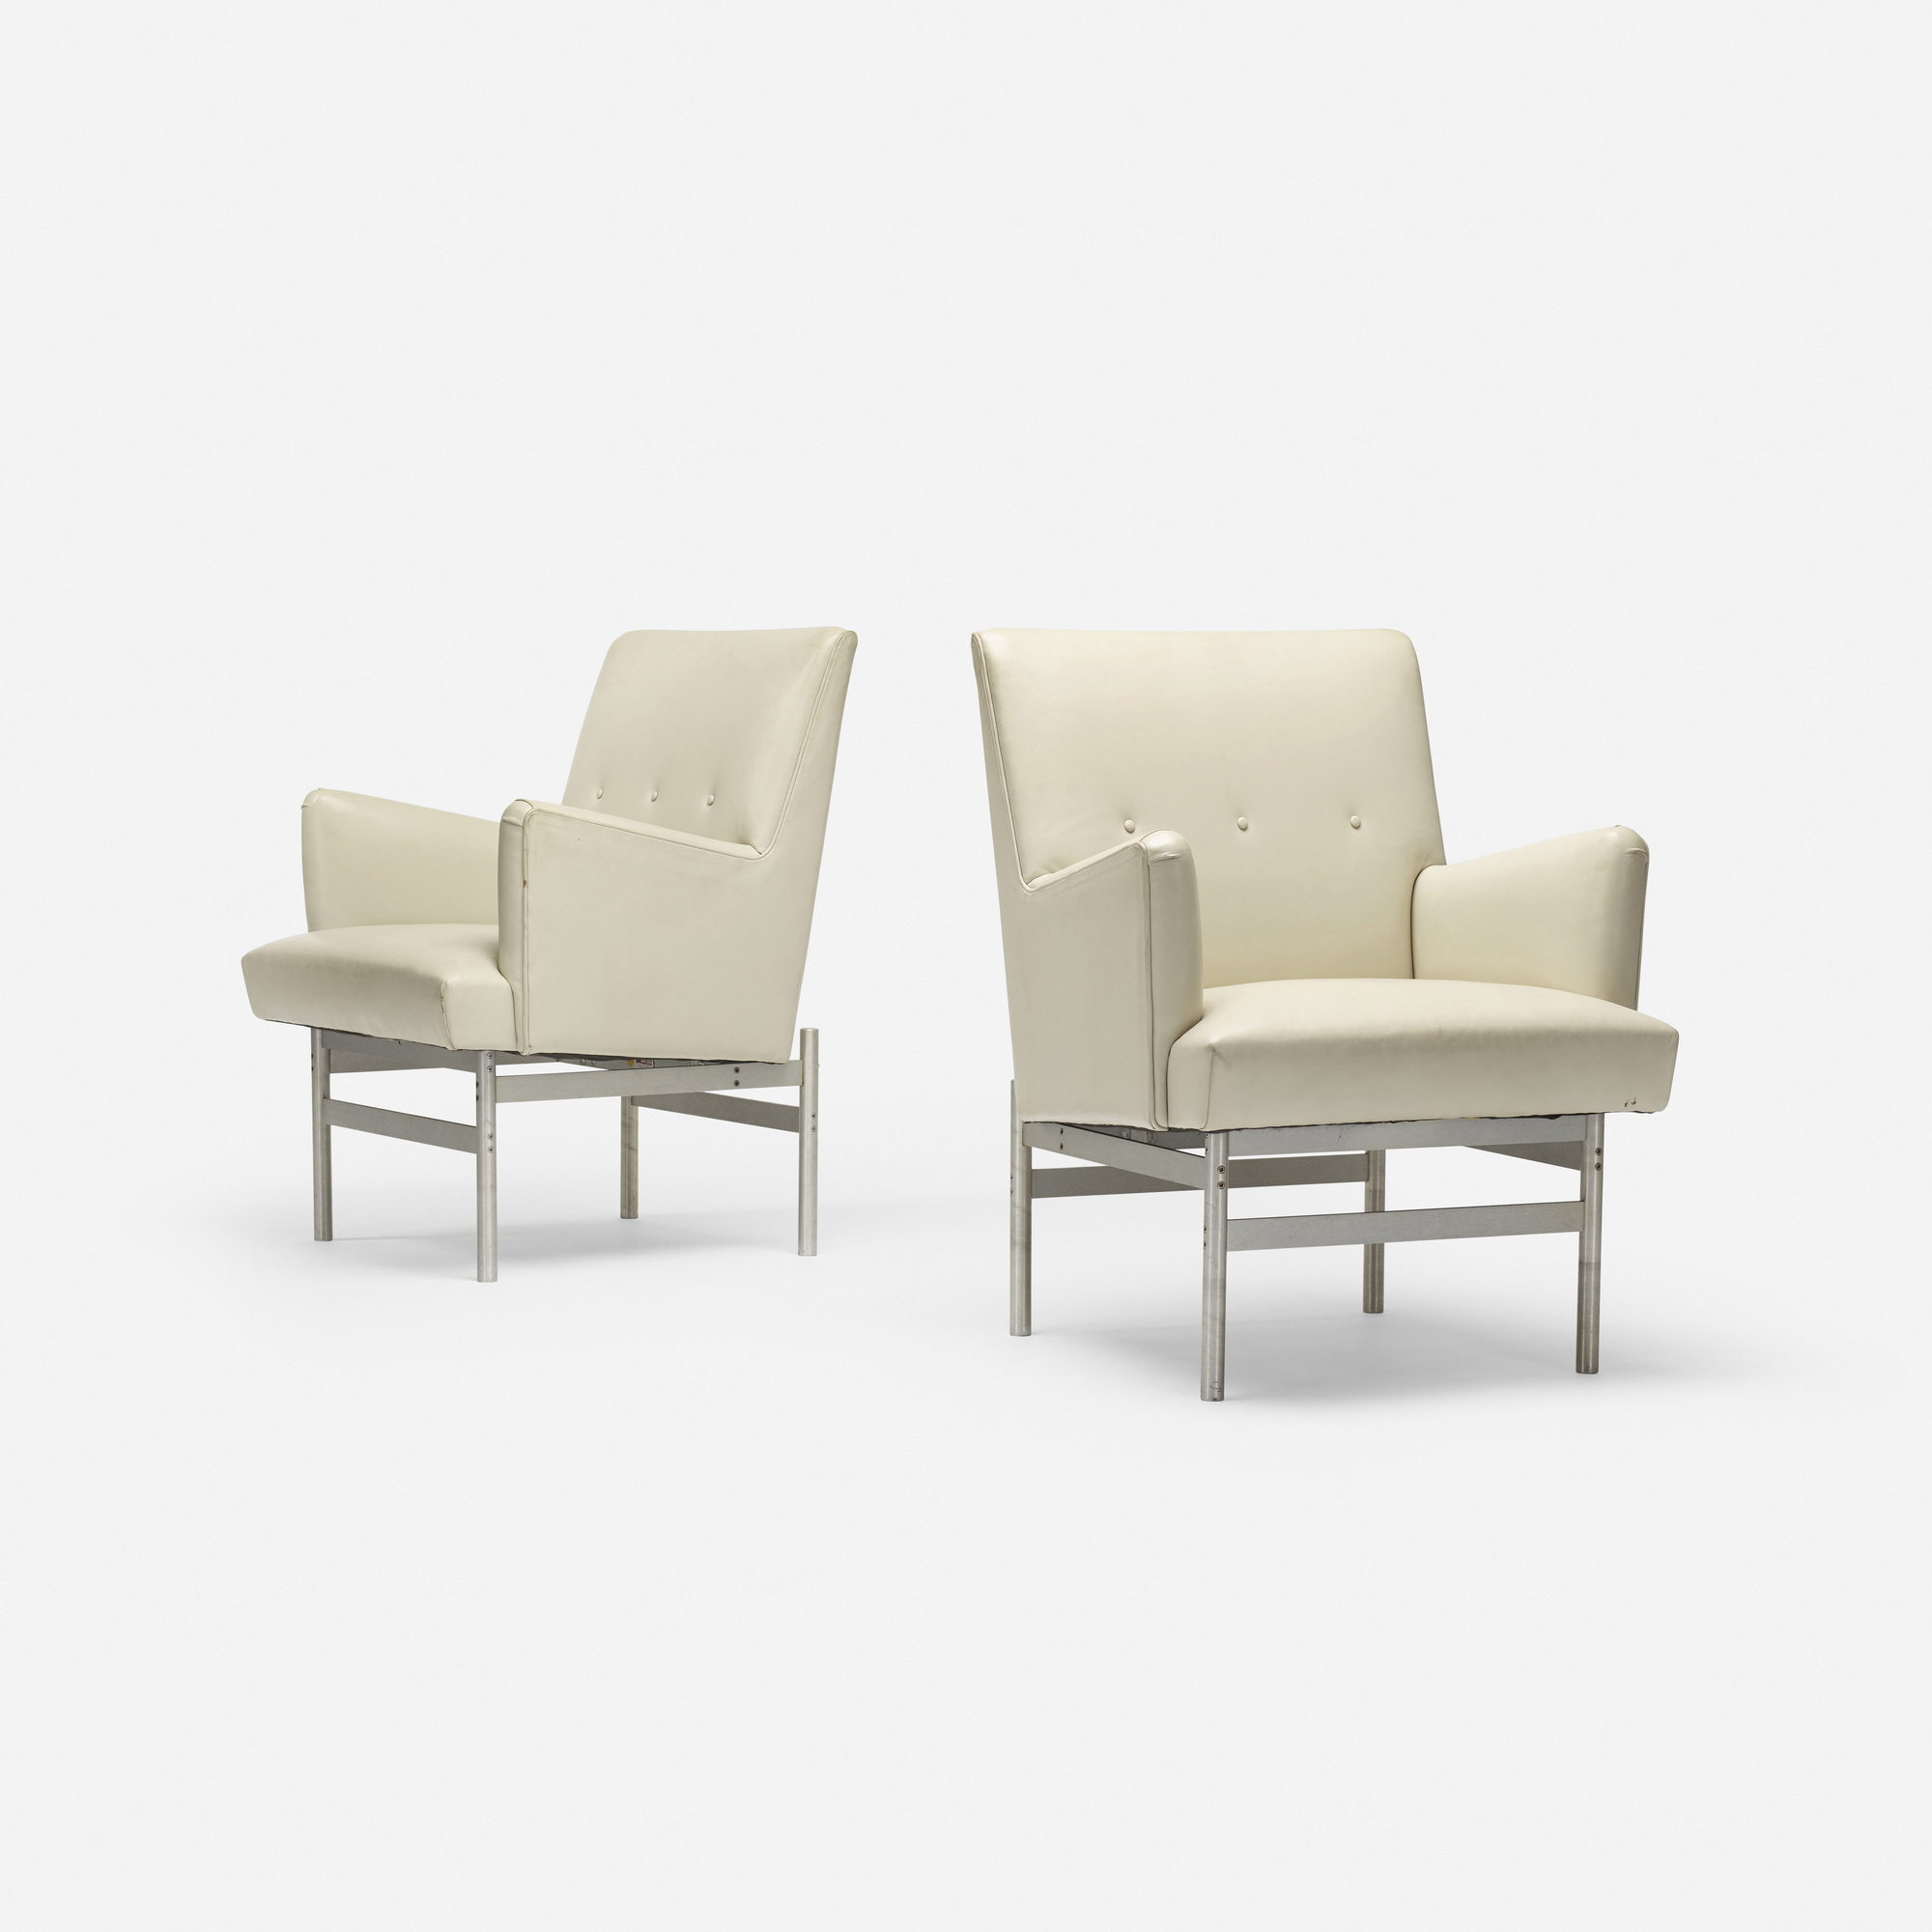 605: Modern / lounge chairs, pair (1 of 3)